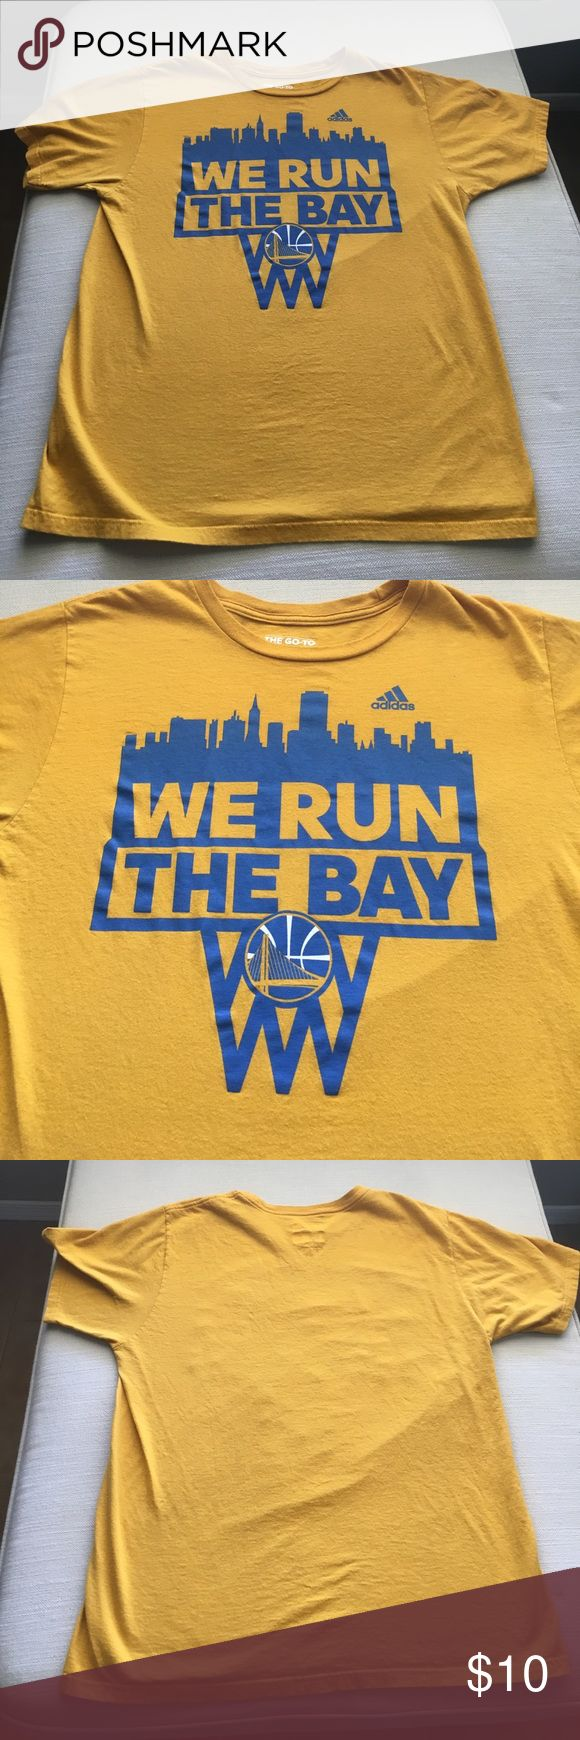 Men's Golden State Warriors t-shirt. Men's Golden State Warriors t-shirt in great condition. No rips or stains. Pet free/ smoke free home. NO TRADES. Adidas Shirts Tees - Short Sleeve